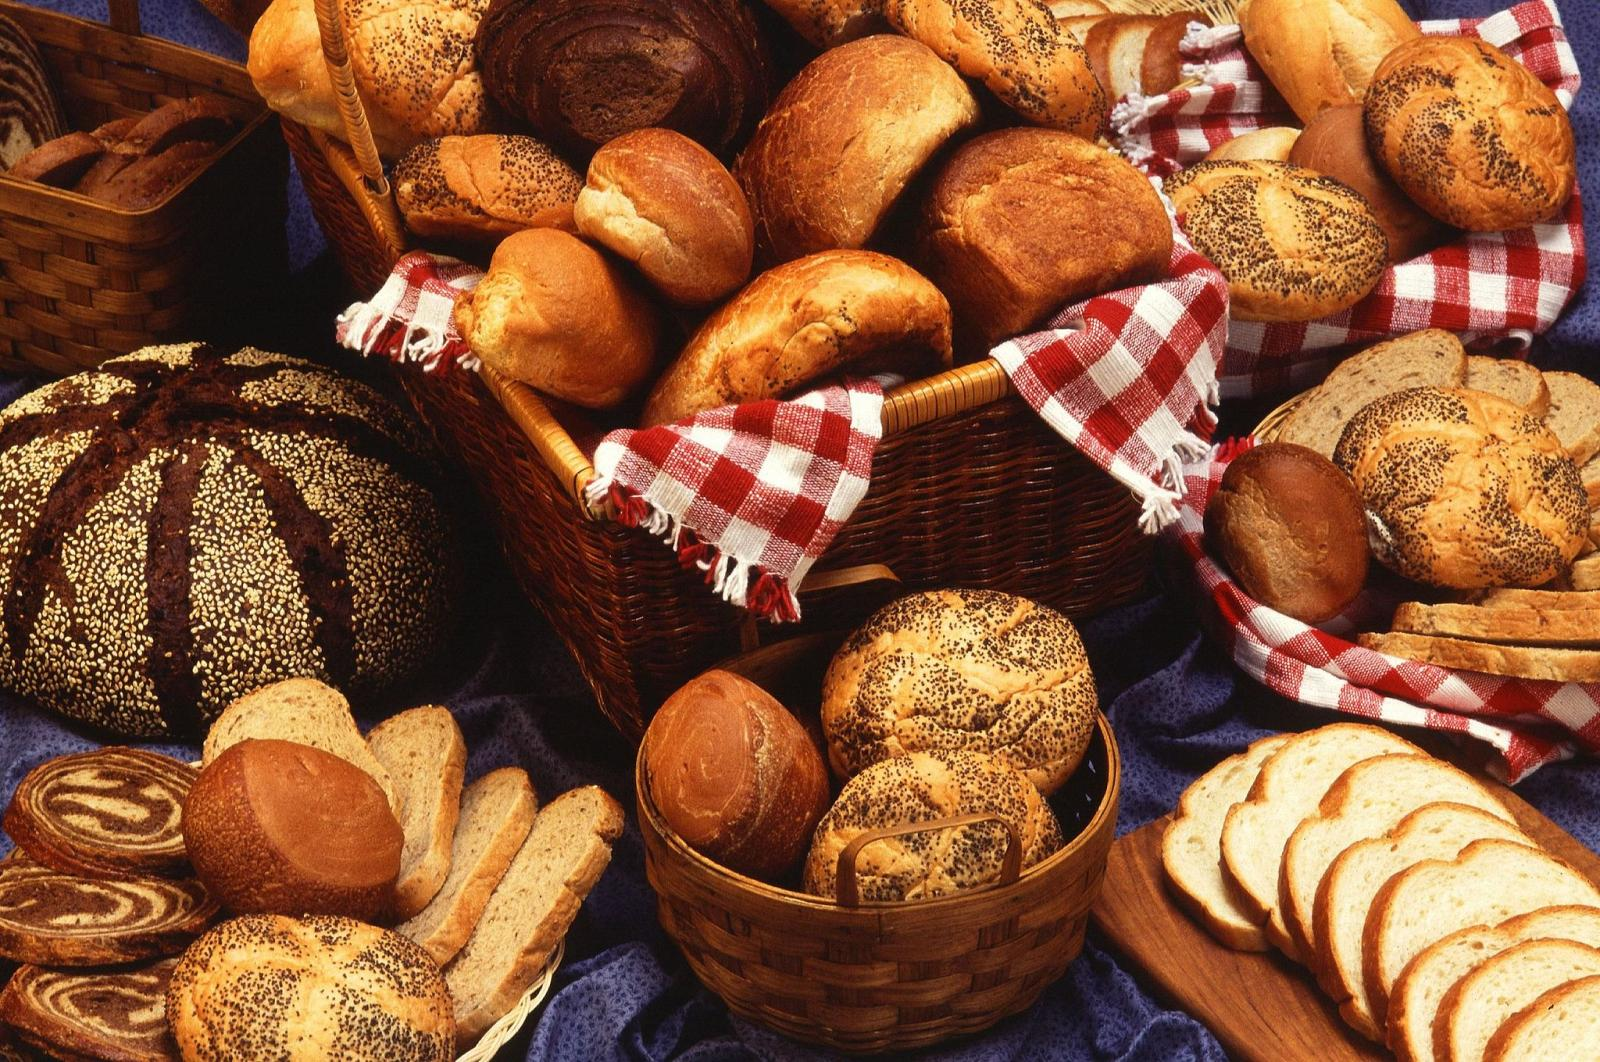 Bakery waste | Feedipedia